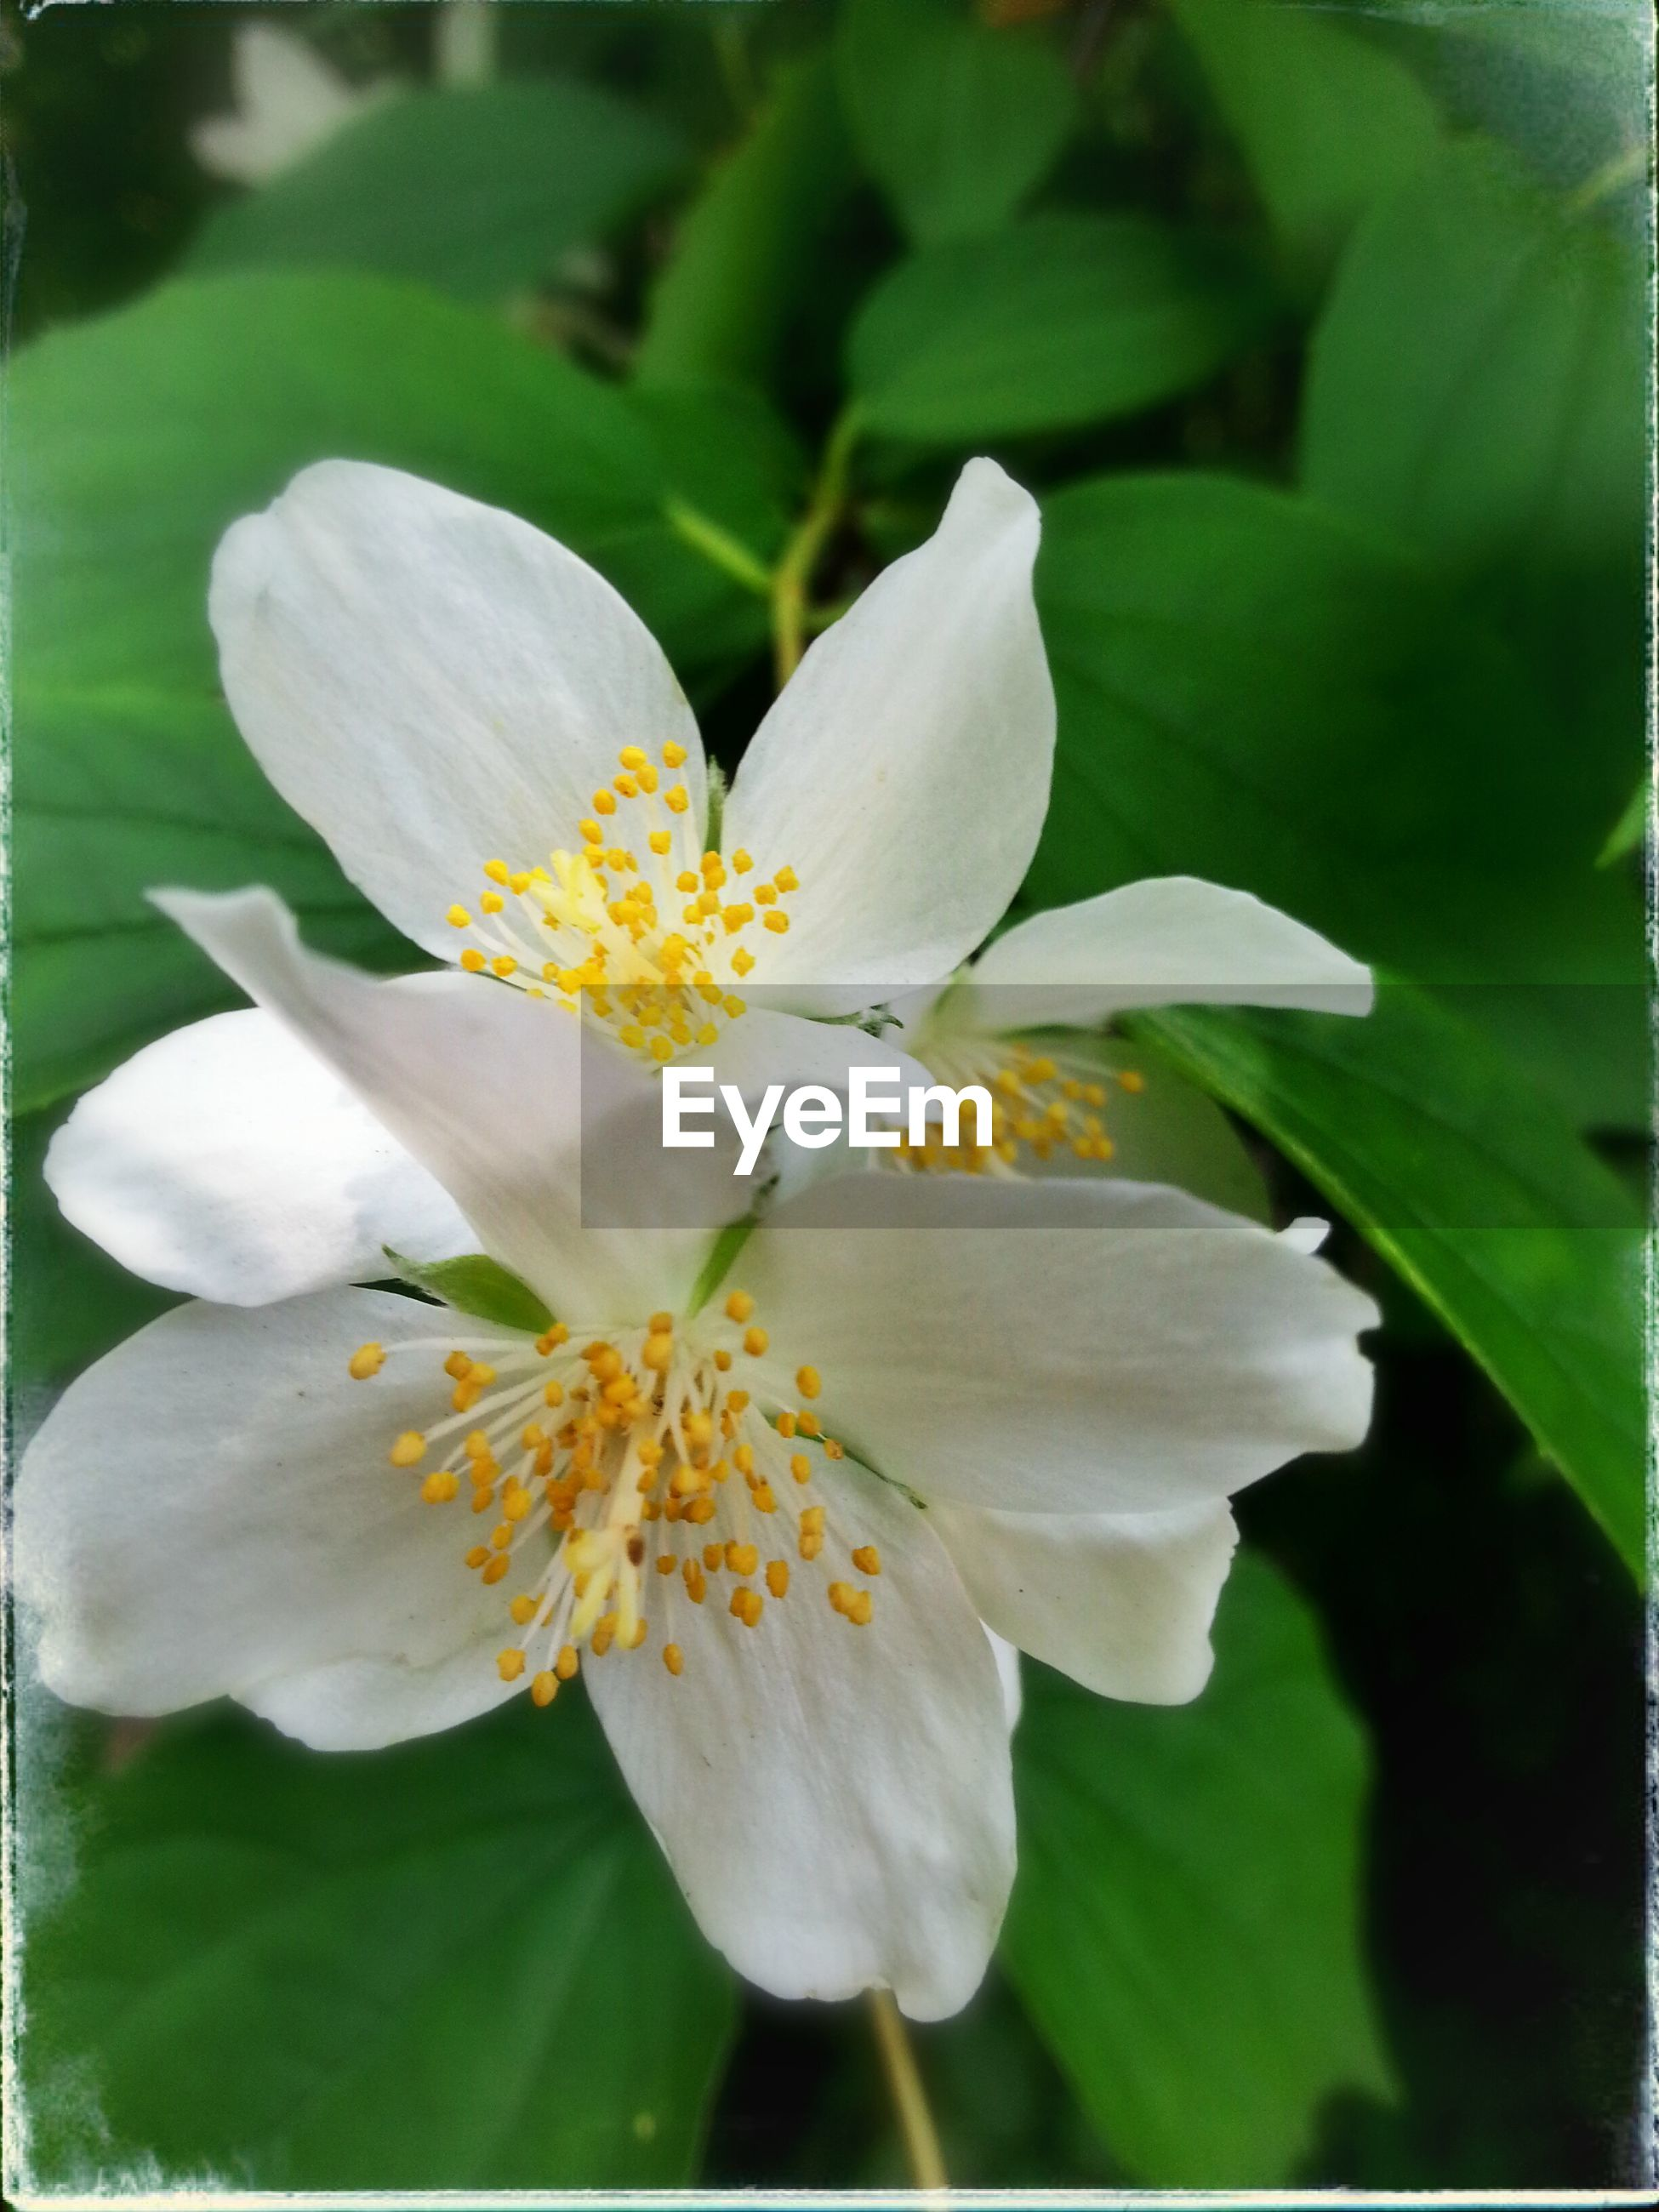 flower, petal, freshness, flower head, white color, fragility, growth, beauty in nature, close-up, blooming, pollen, focus on foreground, nature, stamen, white, plant, leaf, single flower, in bloom, outdoors